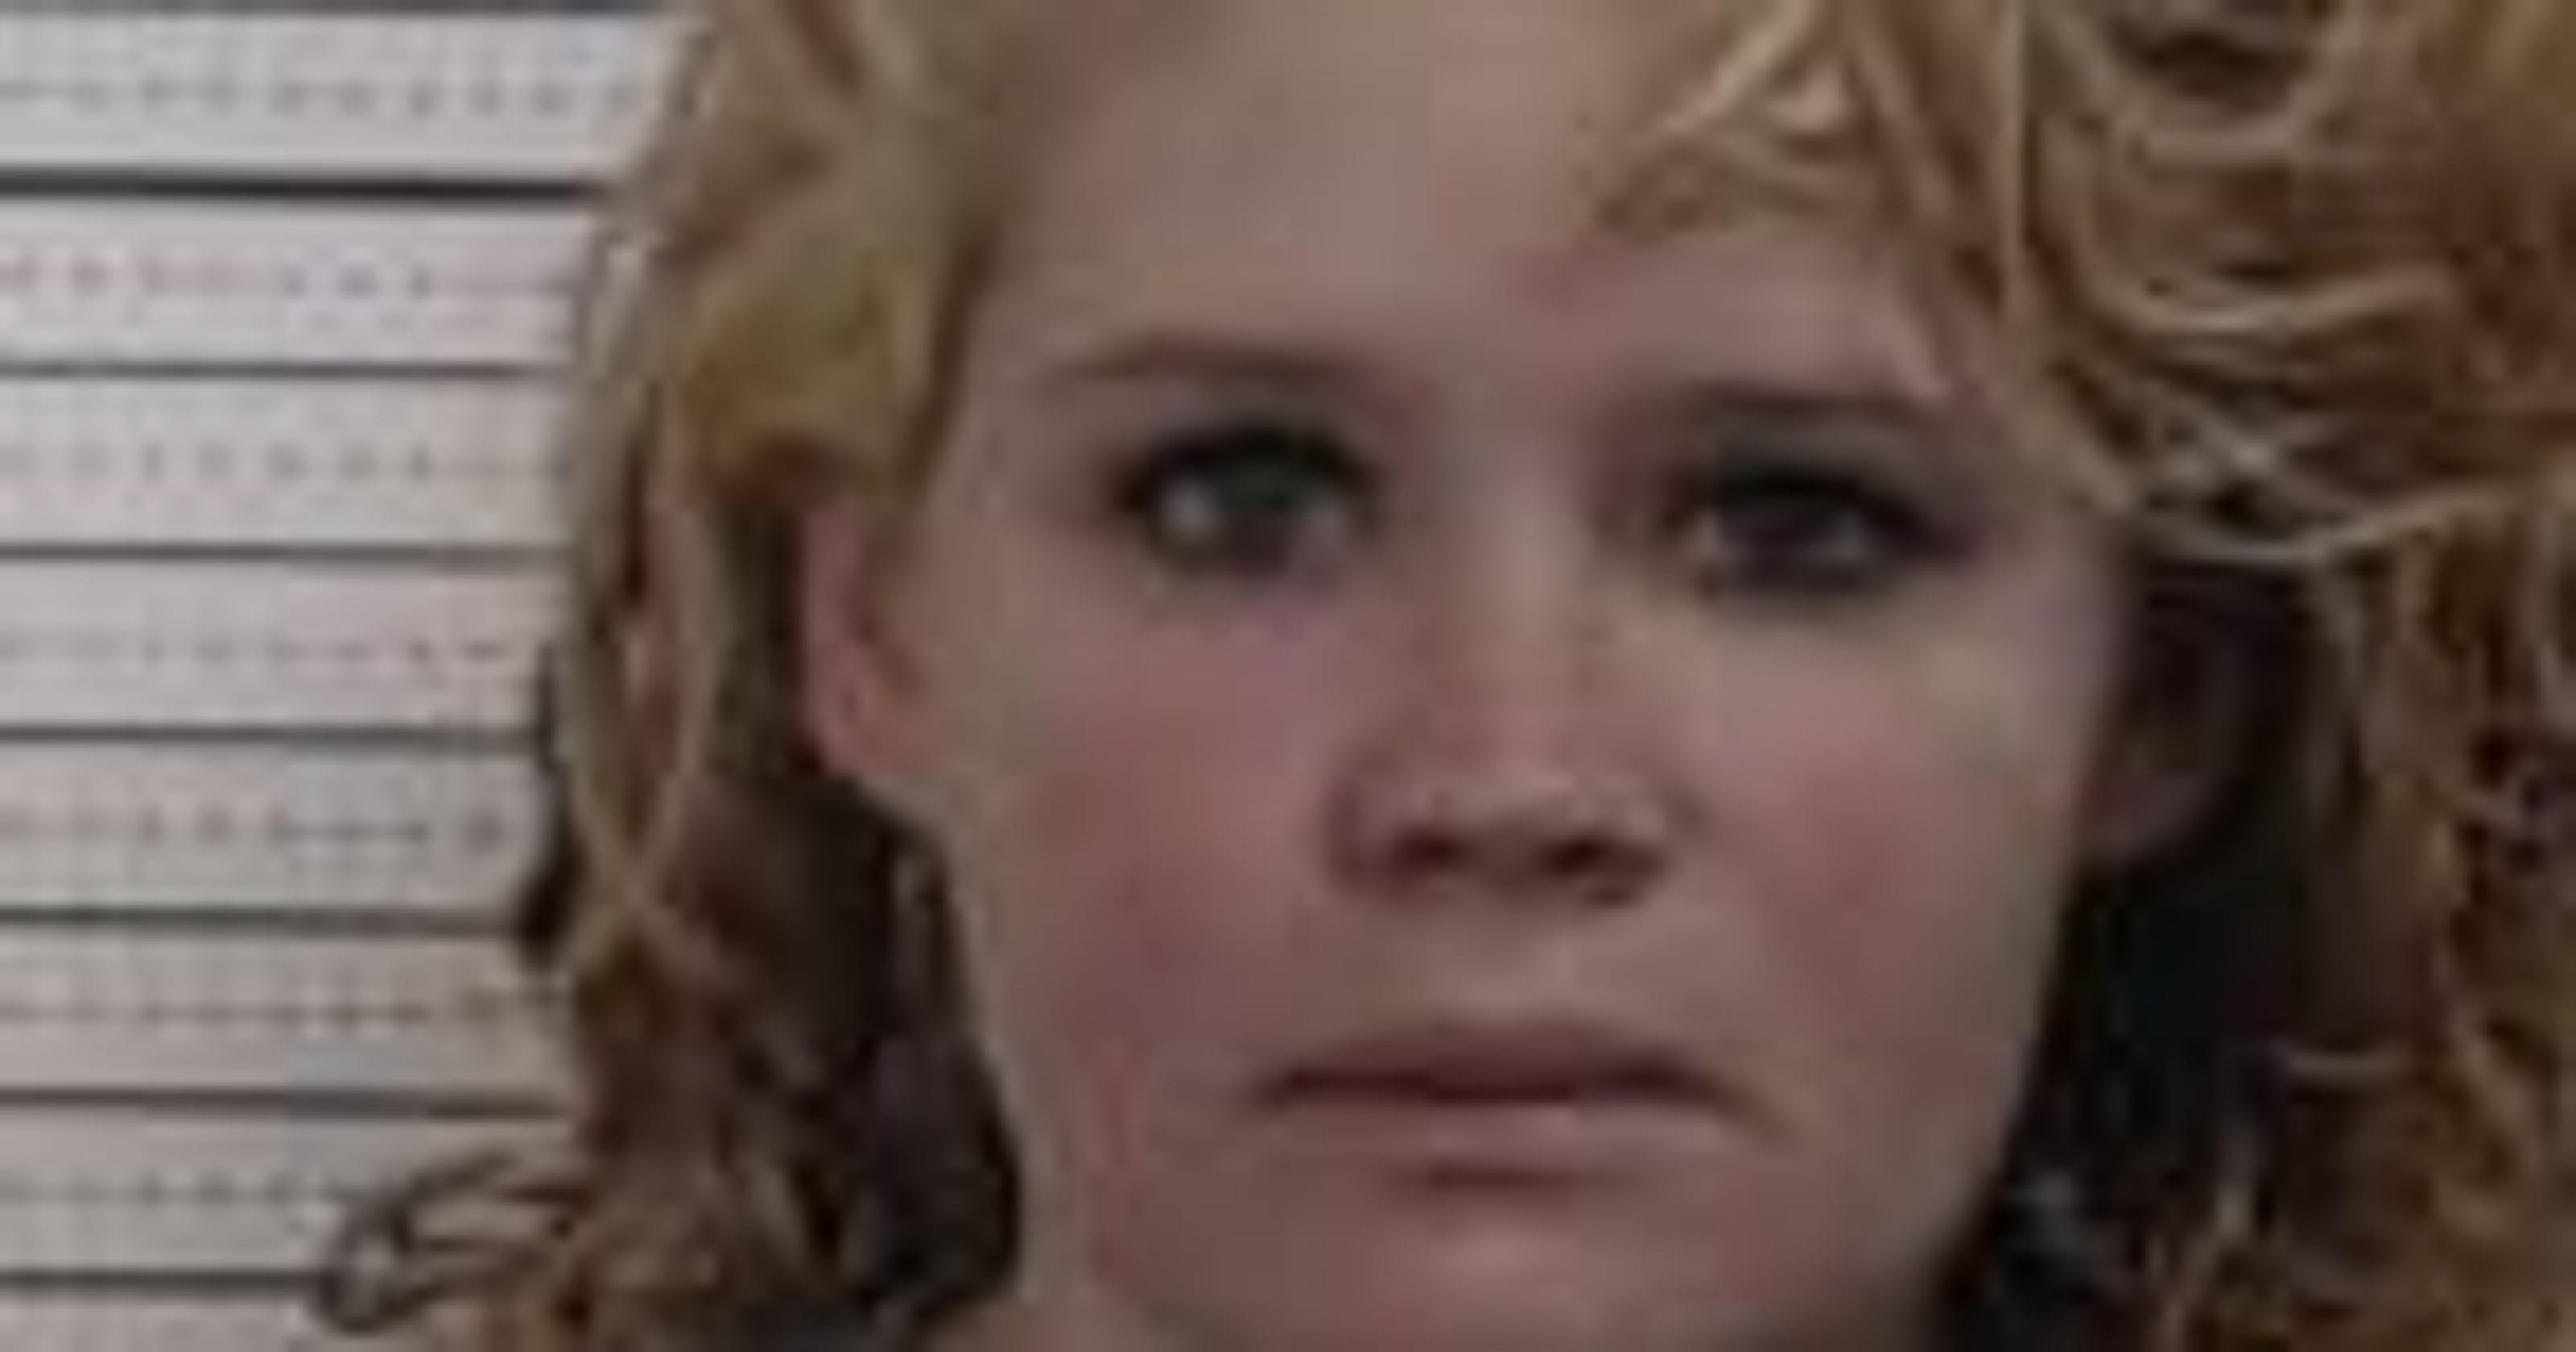 Woman secretly indicted in 2-year-old's 2017 injuries